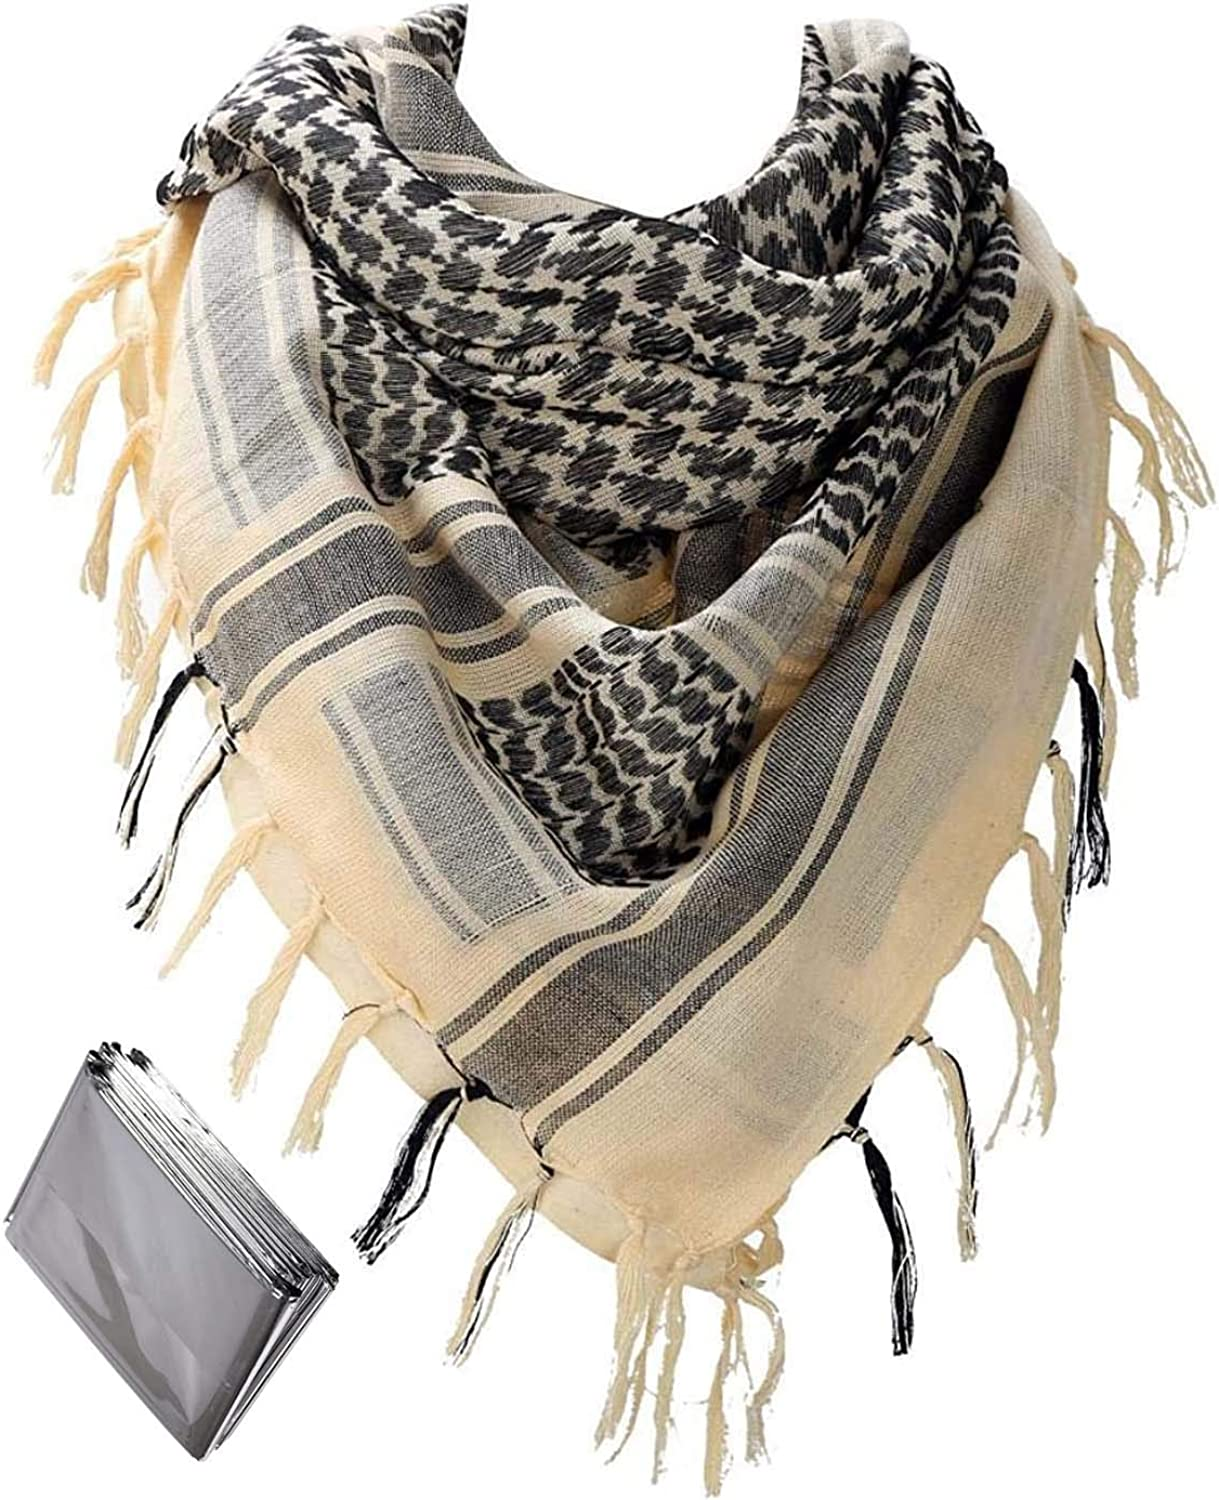 Thicken Shemagh Tactical scarf Men Arab Head Scarf 100% Cotton Beige Military Tactical Desert Scarf Keffiyeh Head Neck Wrap With 1pc Emergency Blanket